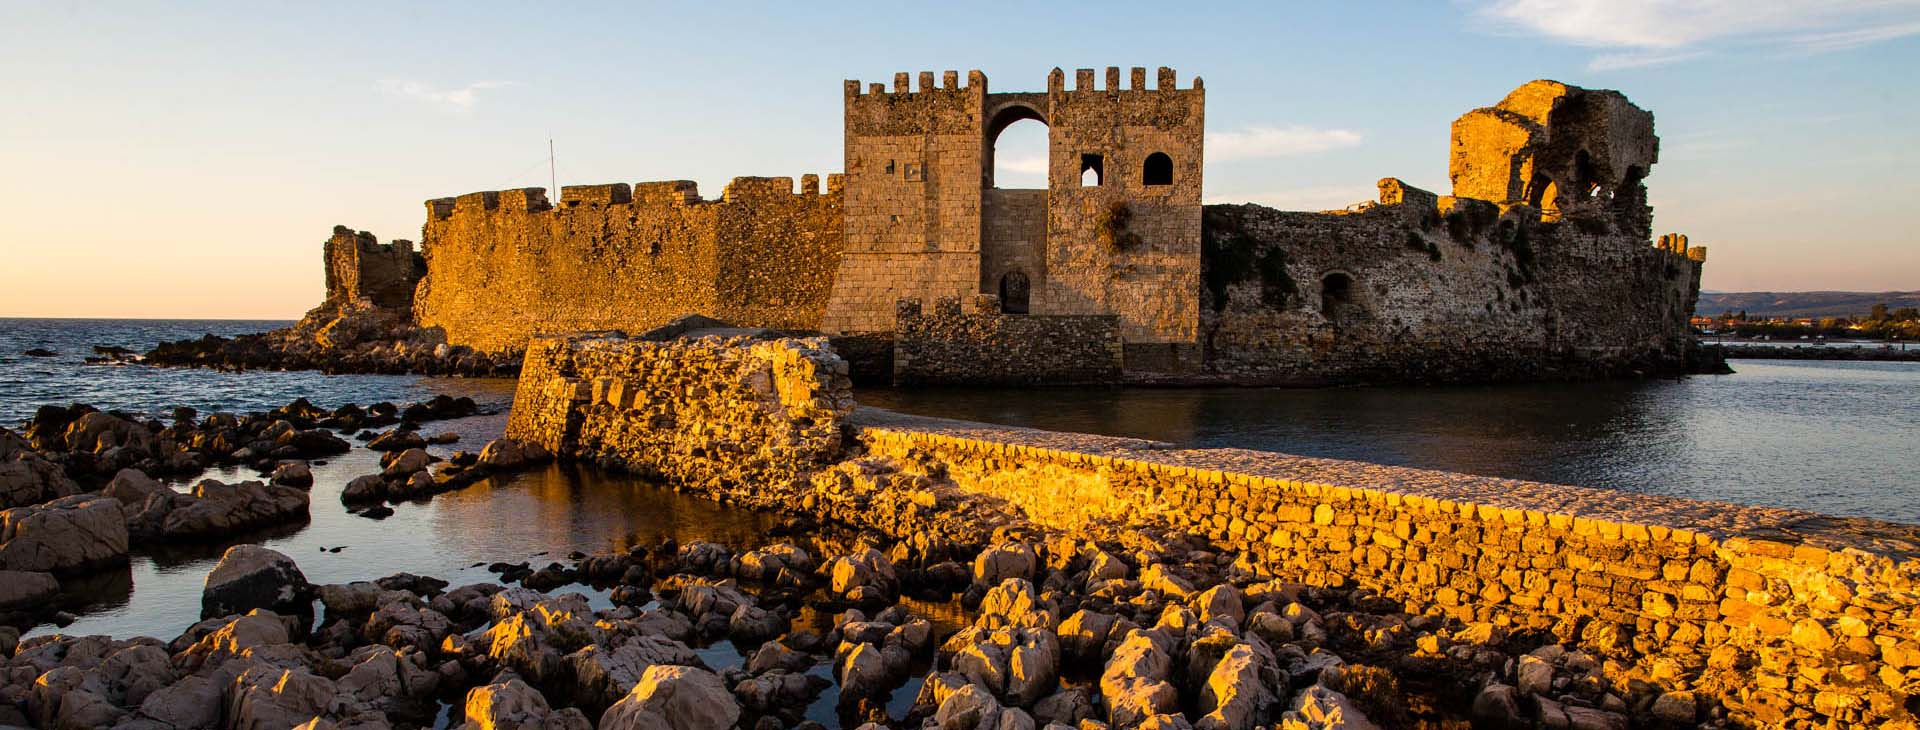 Castle of Koroni, Messinia